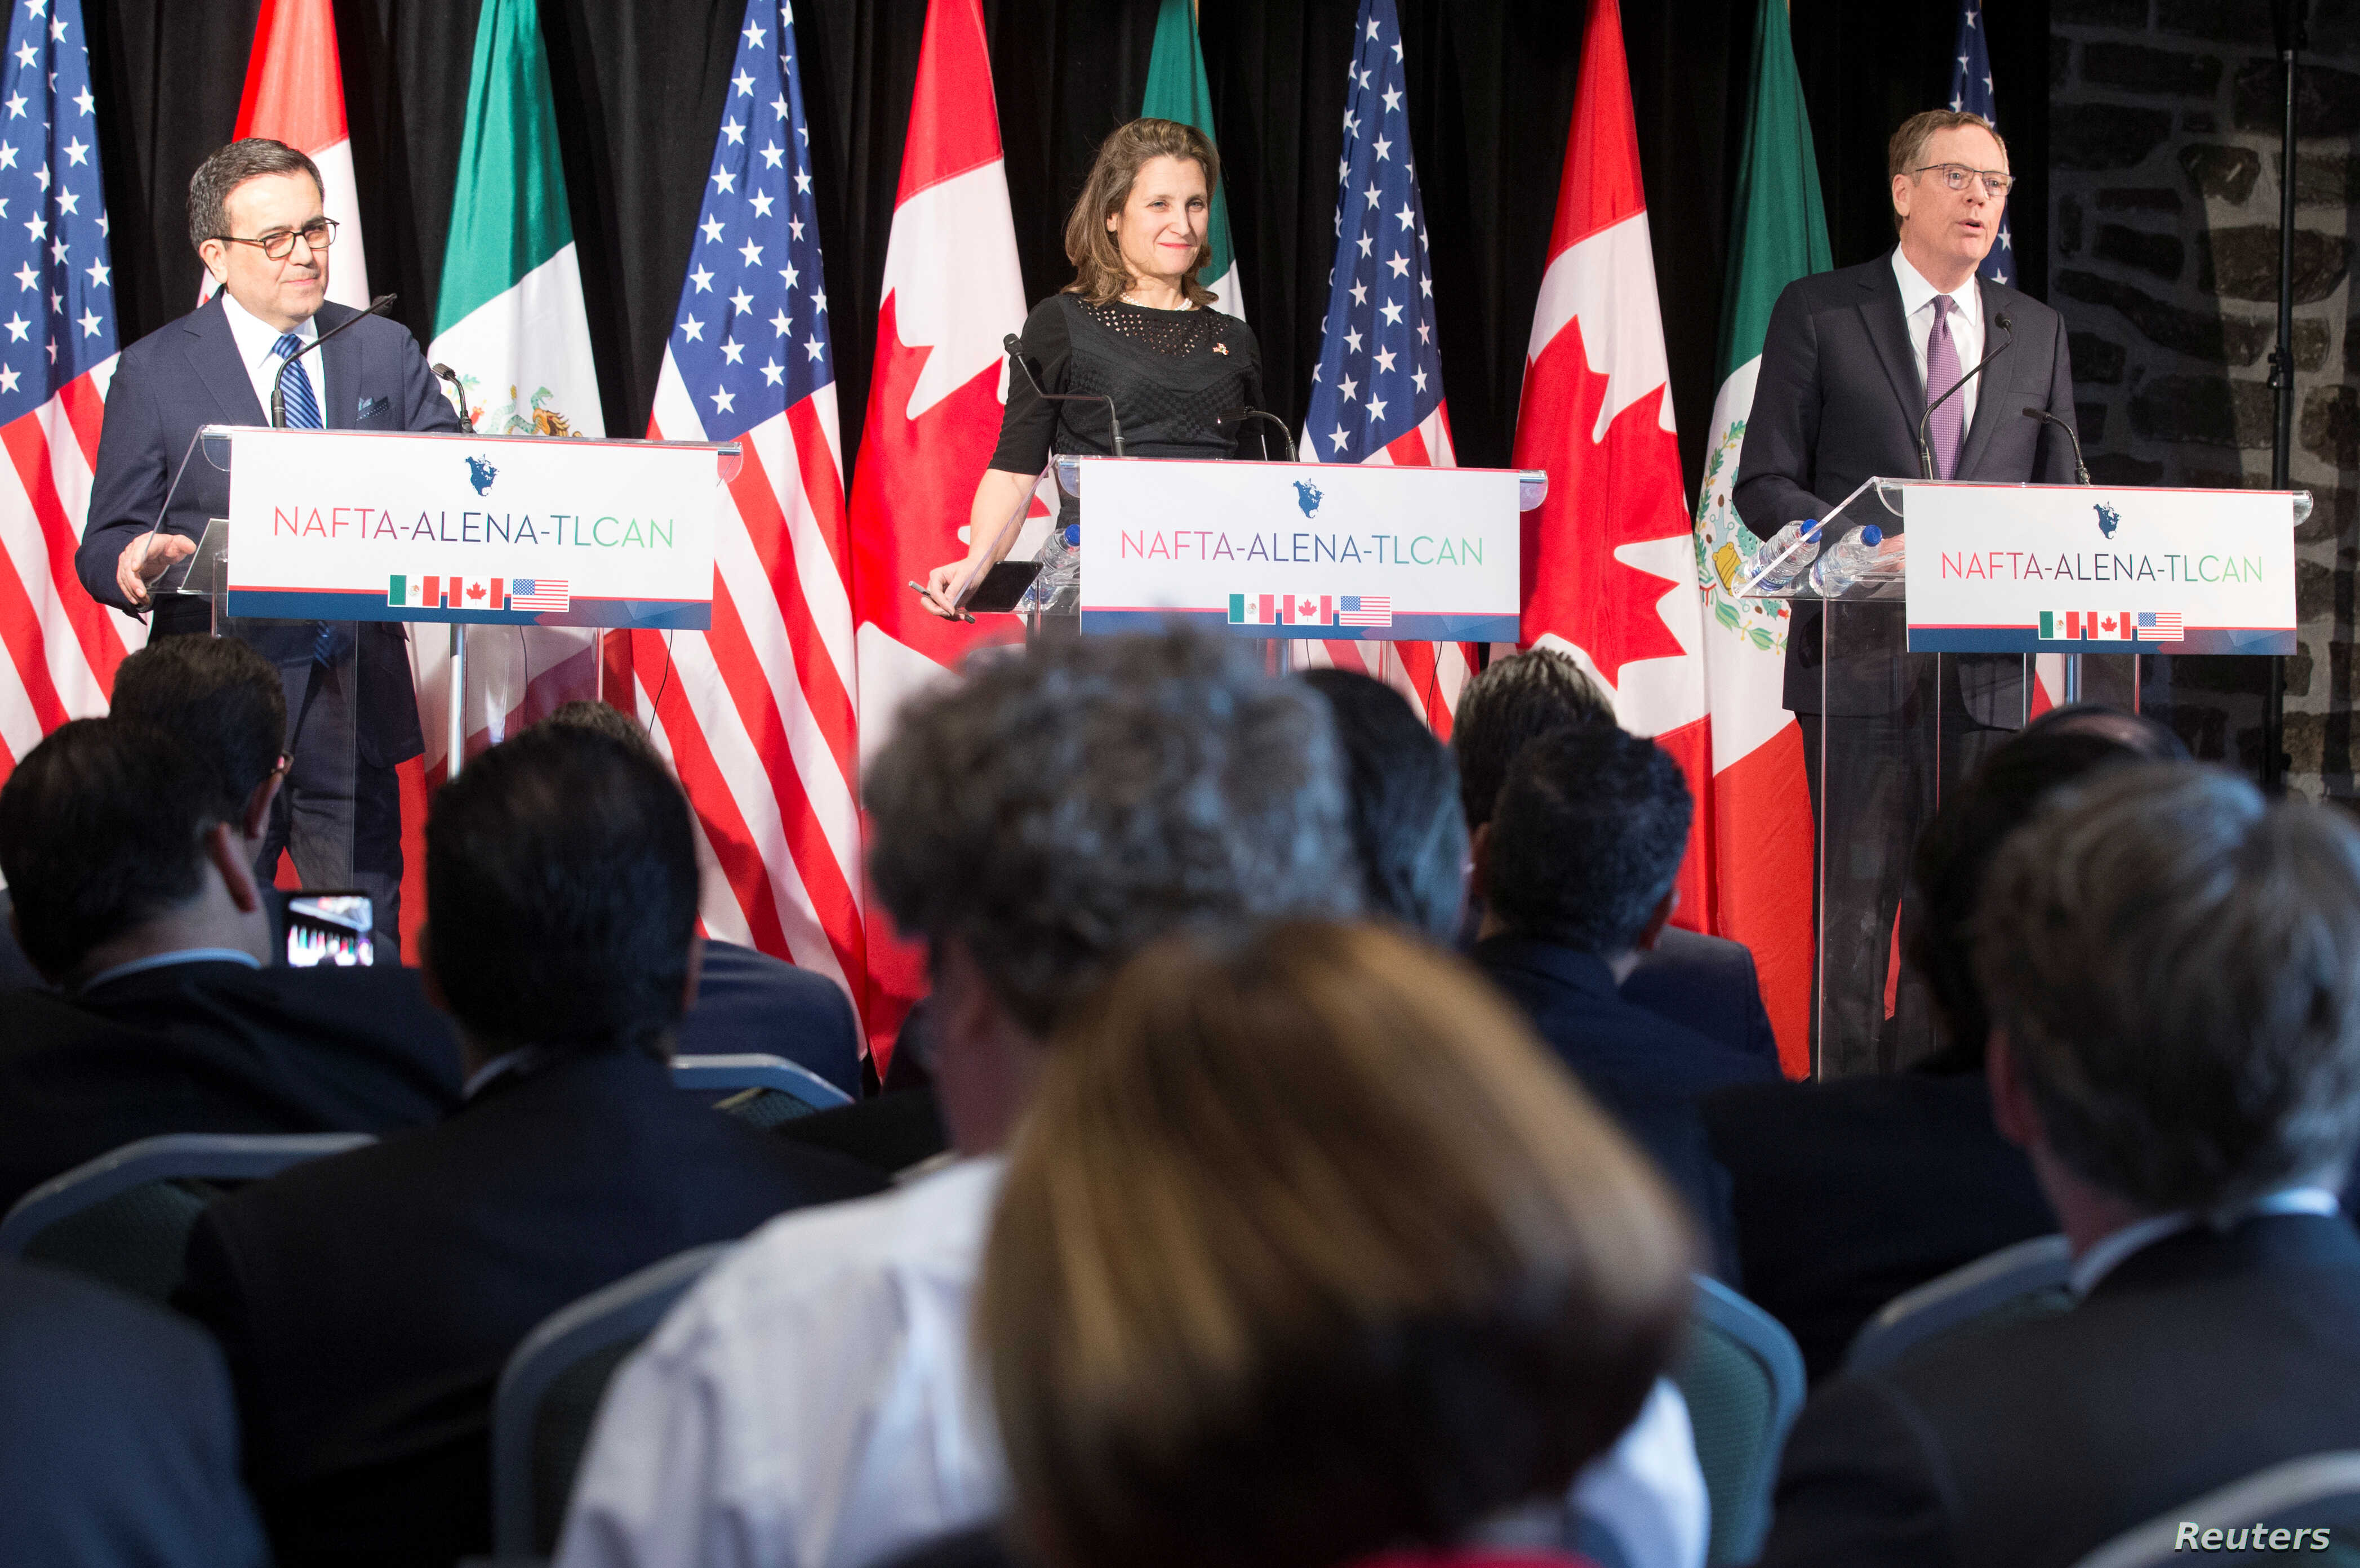 US Rejects Proposals to Unblock NAFTA, But Will Stay in